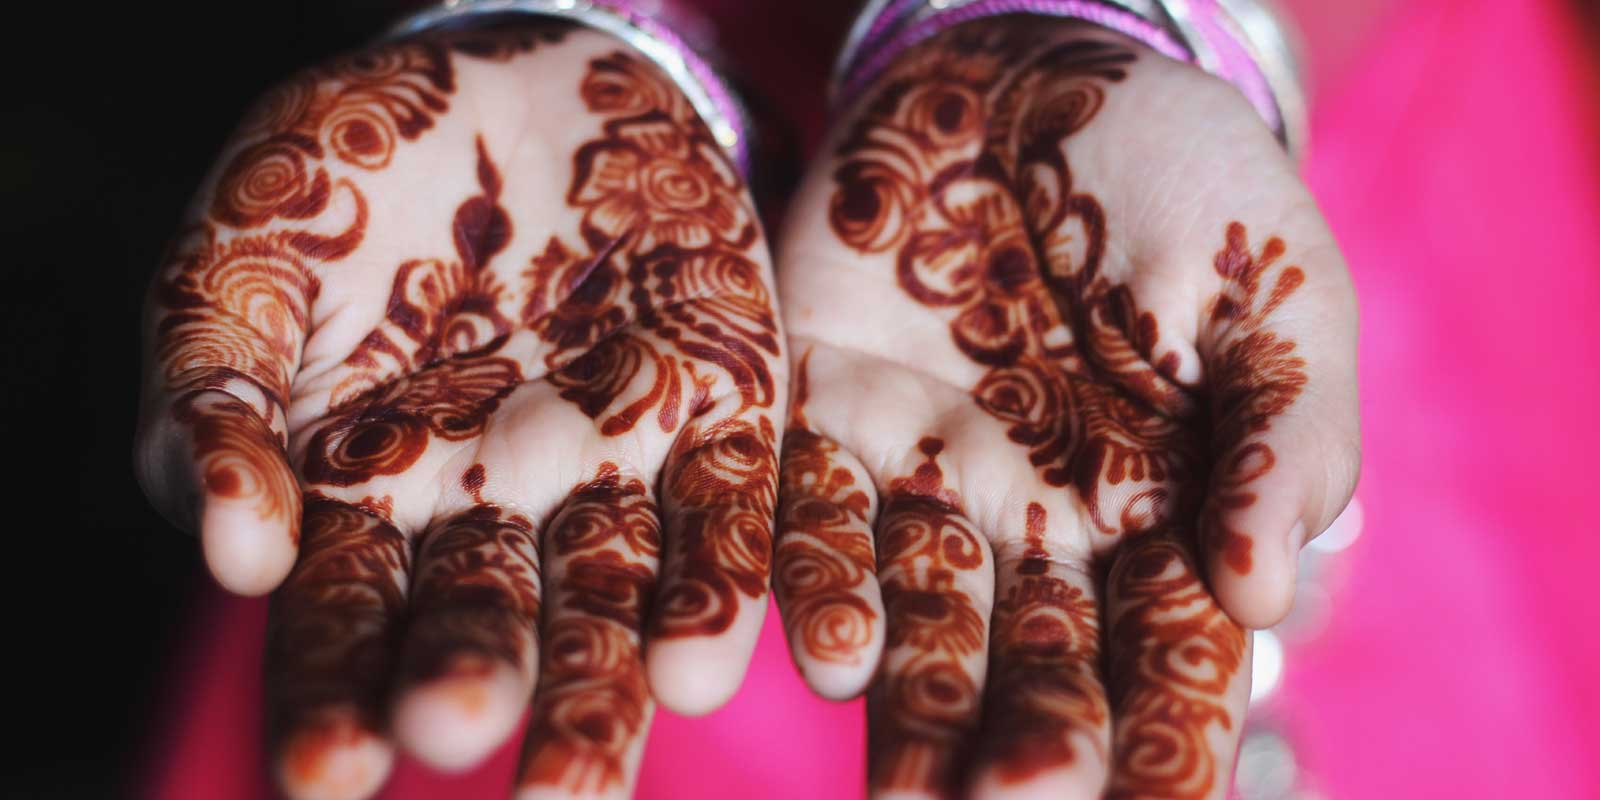 Closeup photo of a woman's hands with intricate henna tattoo on her palms.